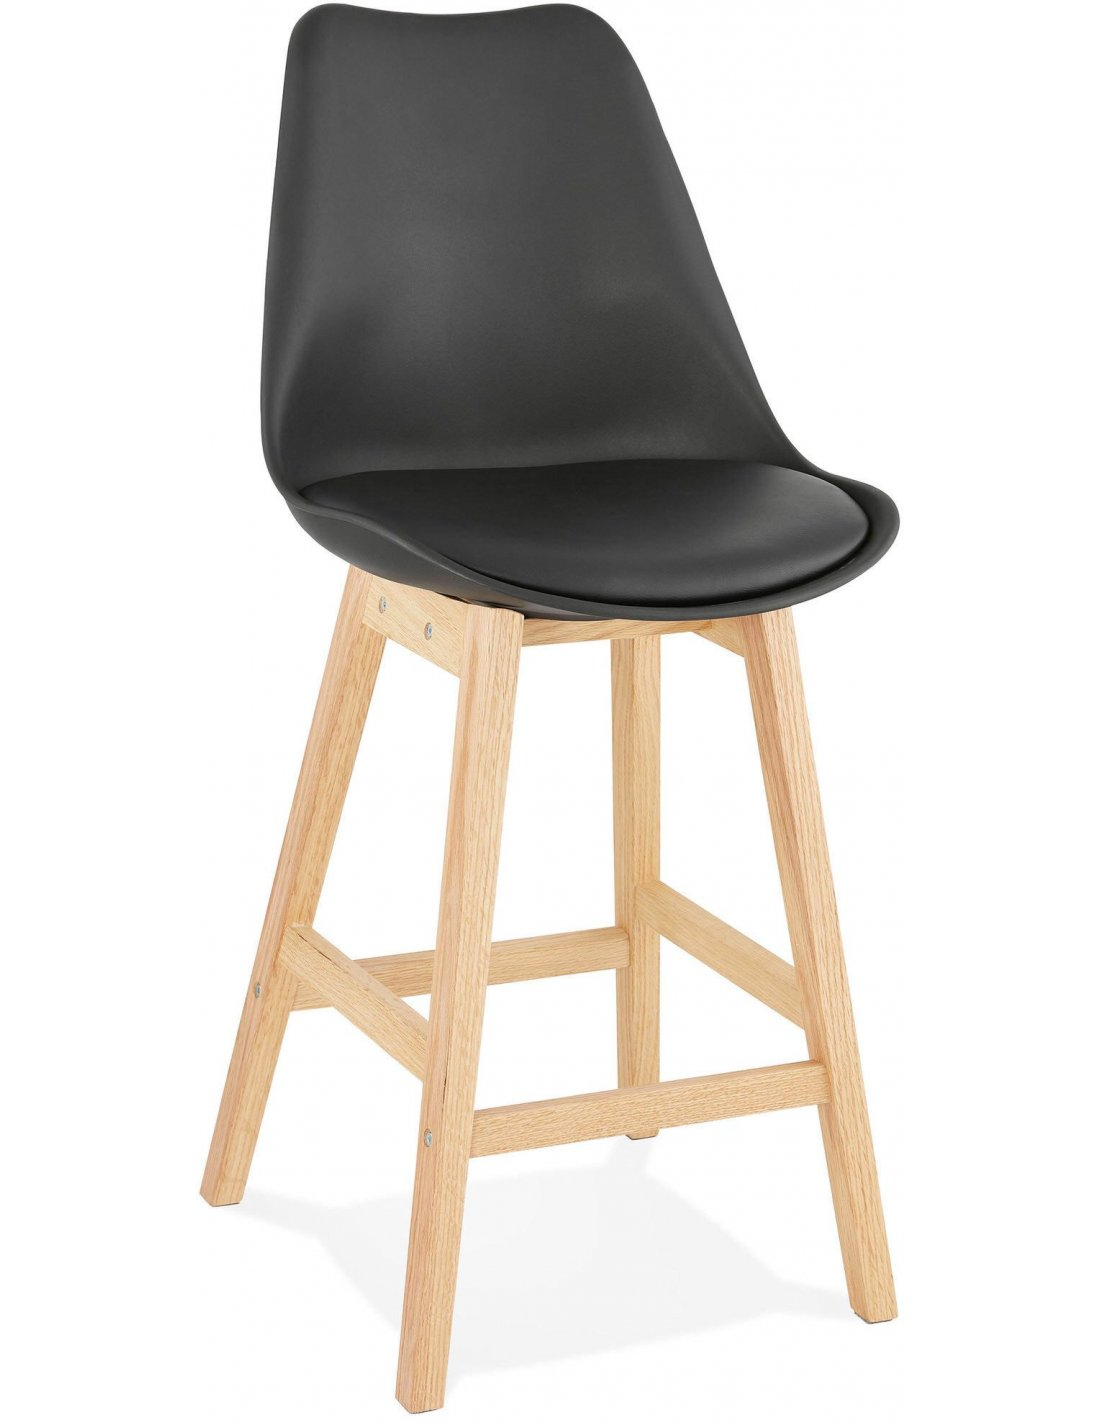 Tabourets De Bar Simili Cuir Noir Tabouret De Bar Design April Mini Kokoon Design Noir